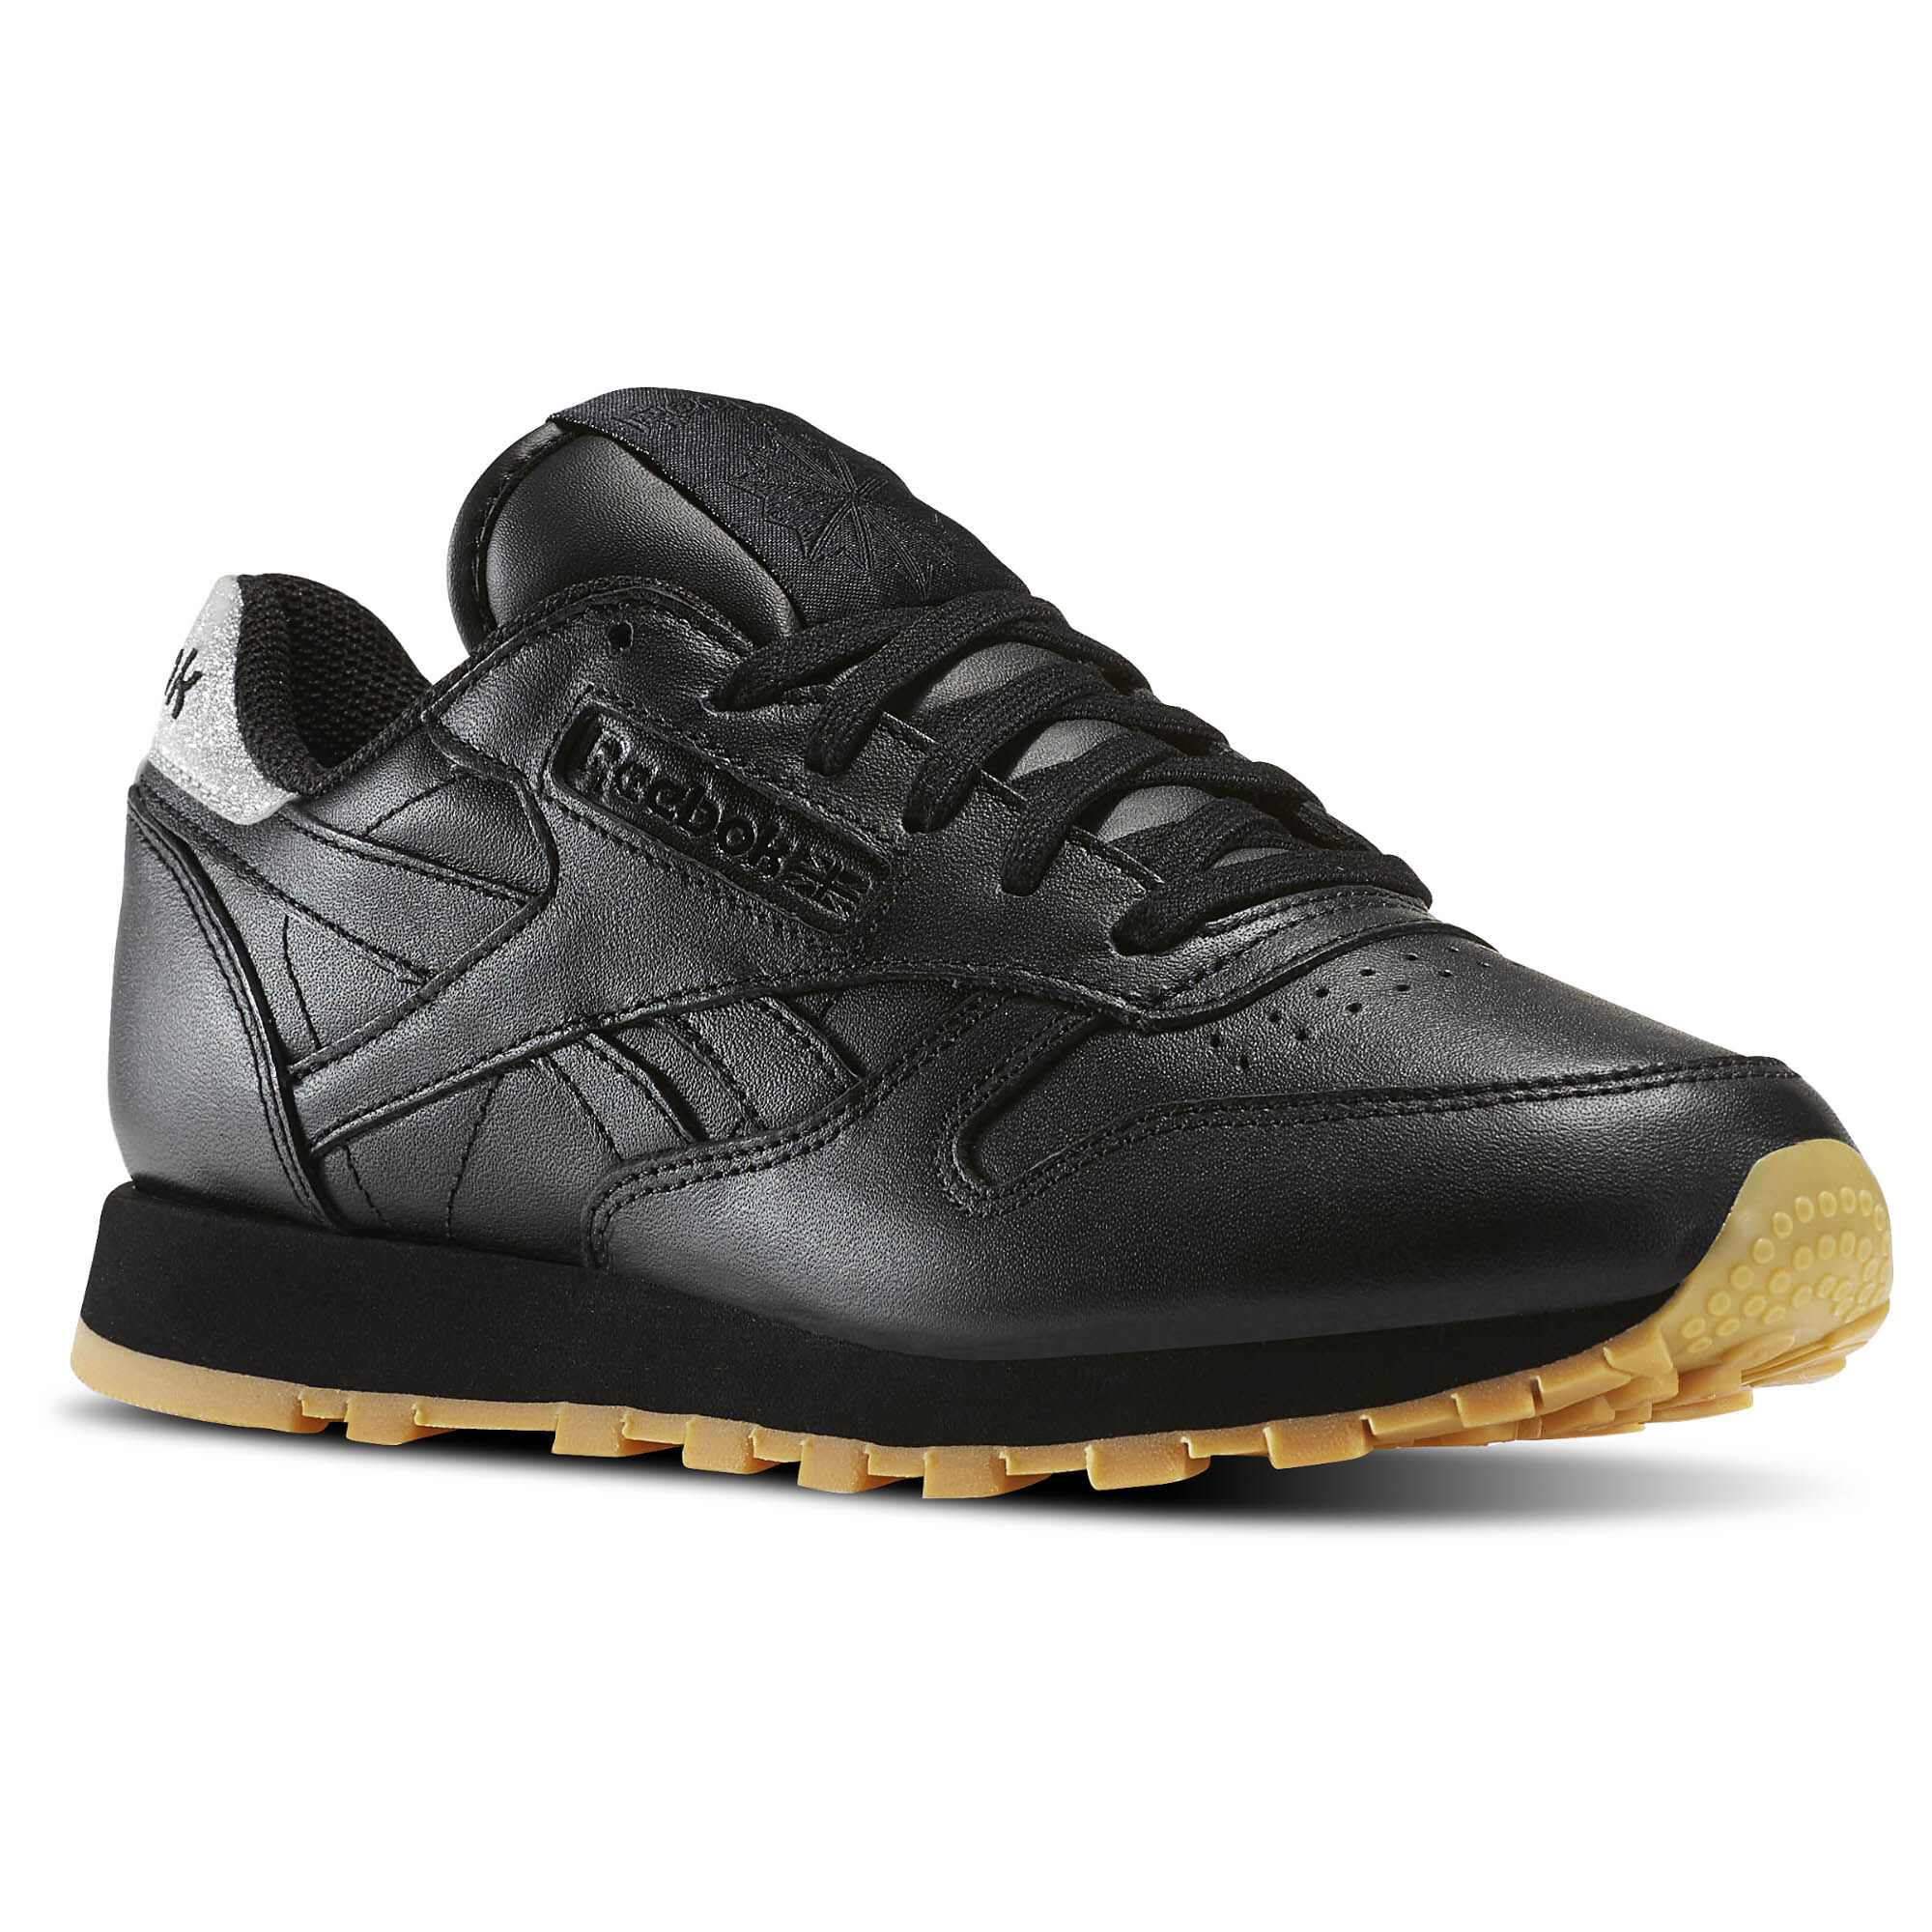 7319b0040445 reebok classic black gum sole cheap   OFF45% The Largest Catalog ...